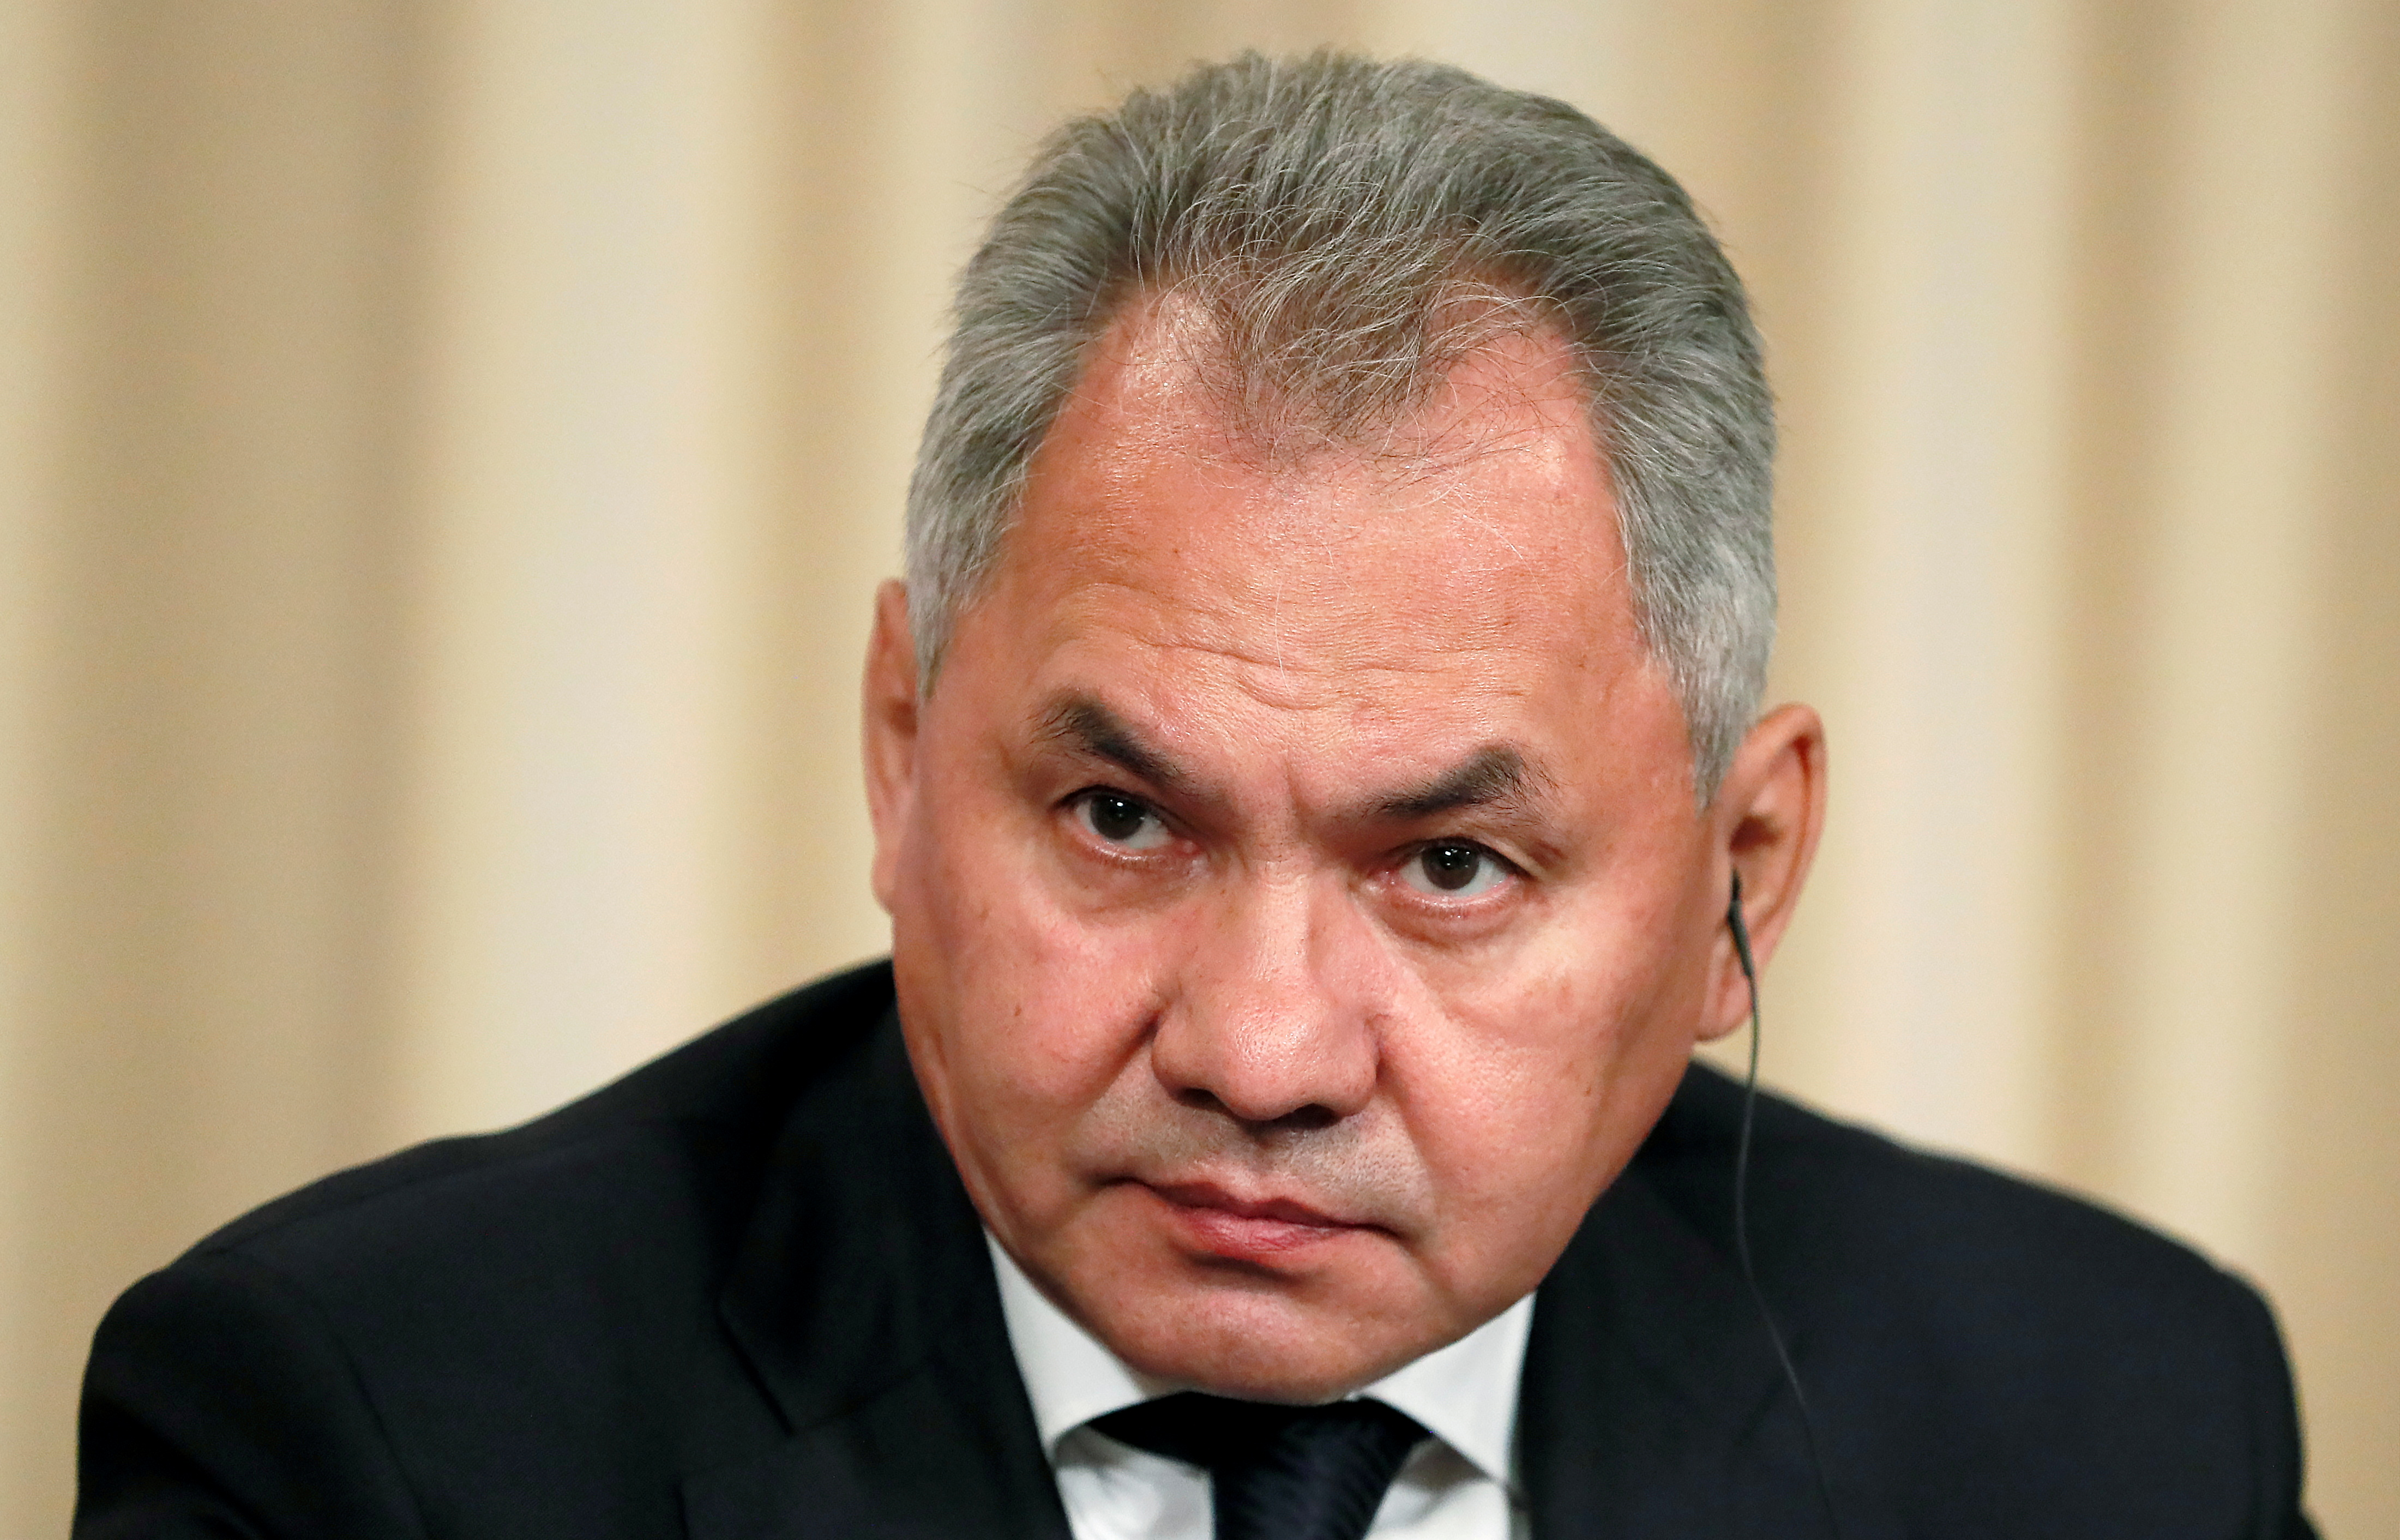 Russian Defence Minister Sergei Shoigu looks on after a meeting of the Russian-French Security Cooperation Council in Moscow, Russia, September 9, 2019.  REUTERS/Shamil Zhumatov/File Photo